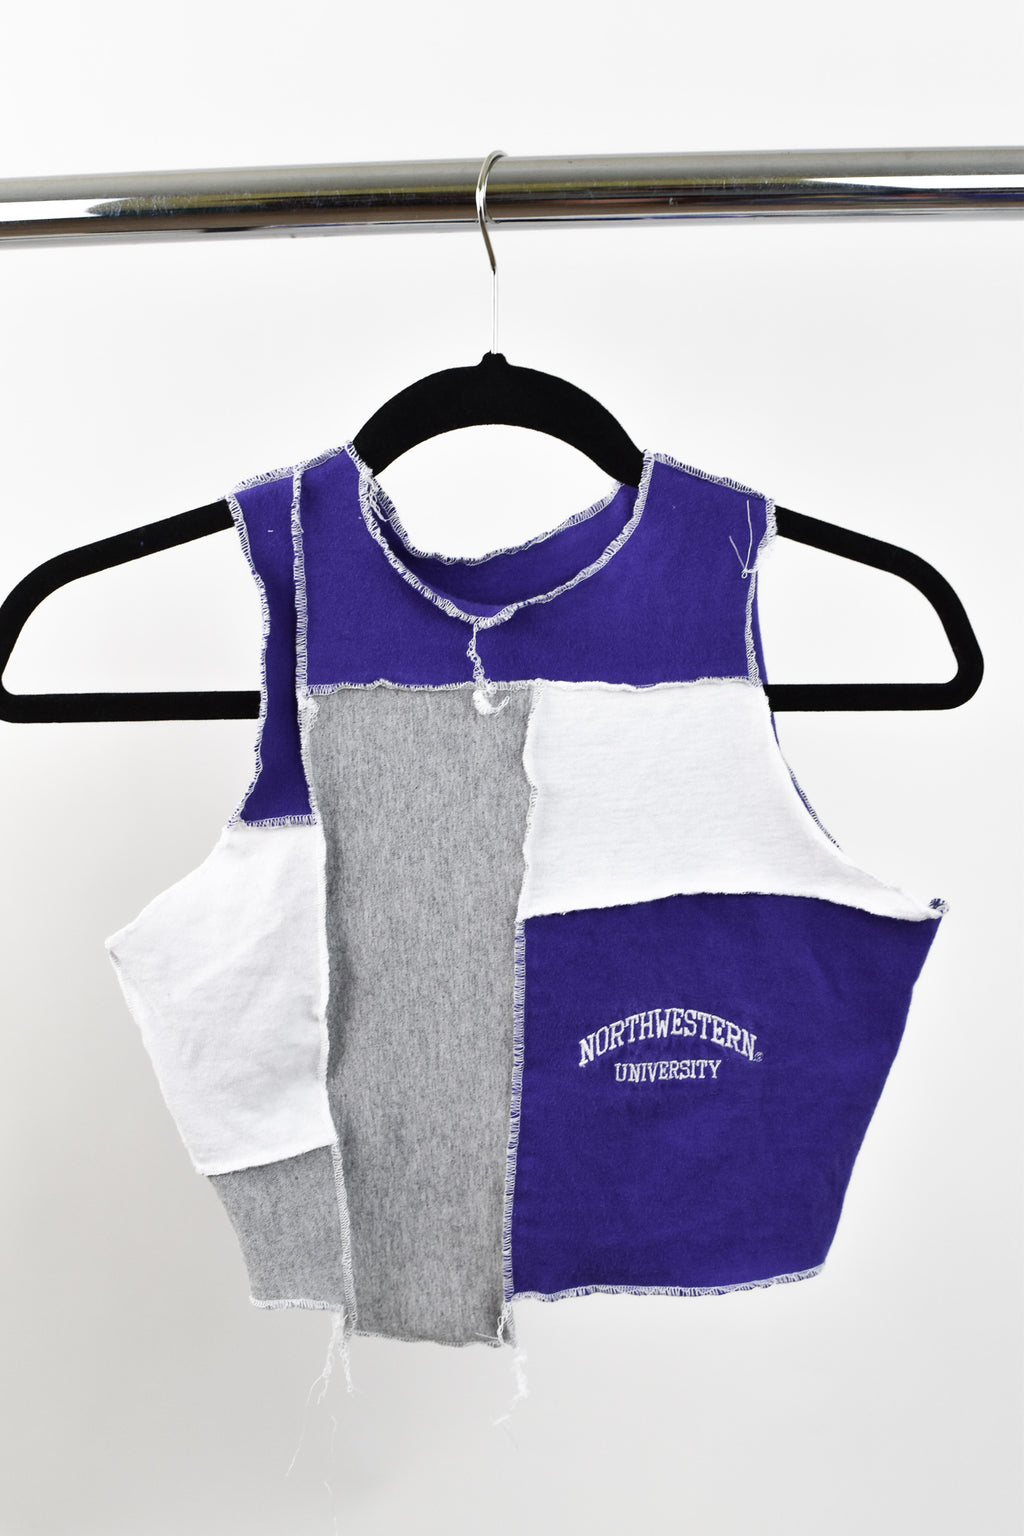 Upcycled Northwestern University Scrappy Top